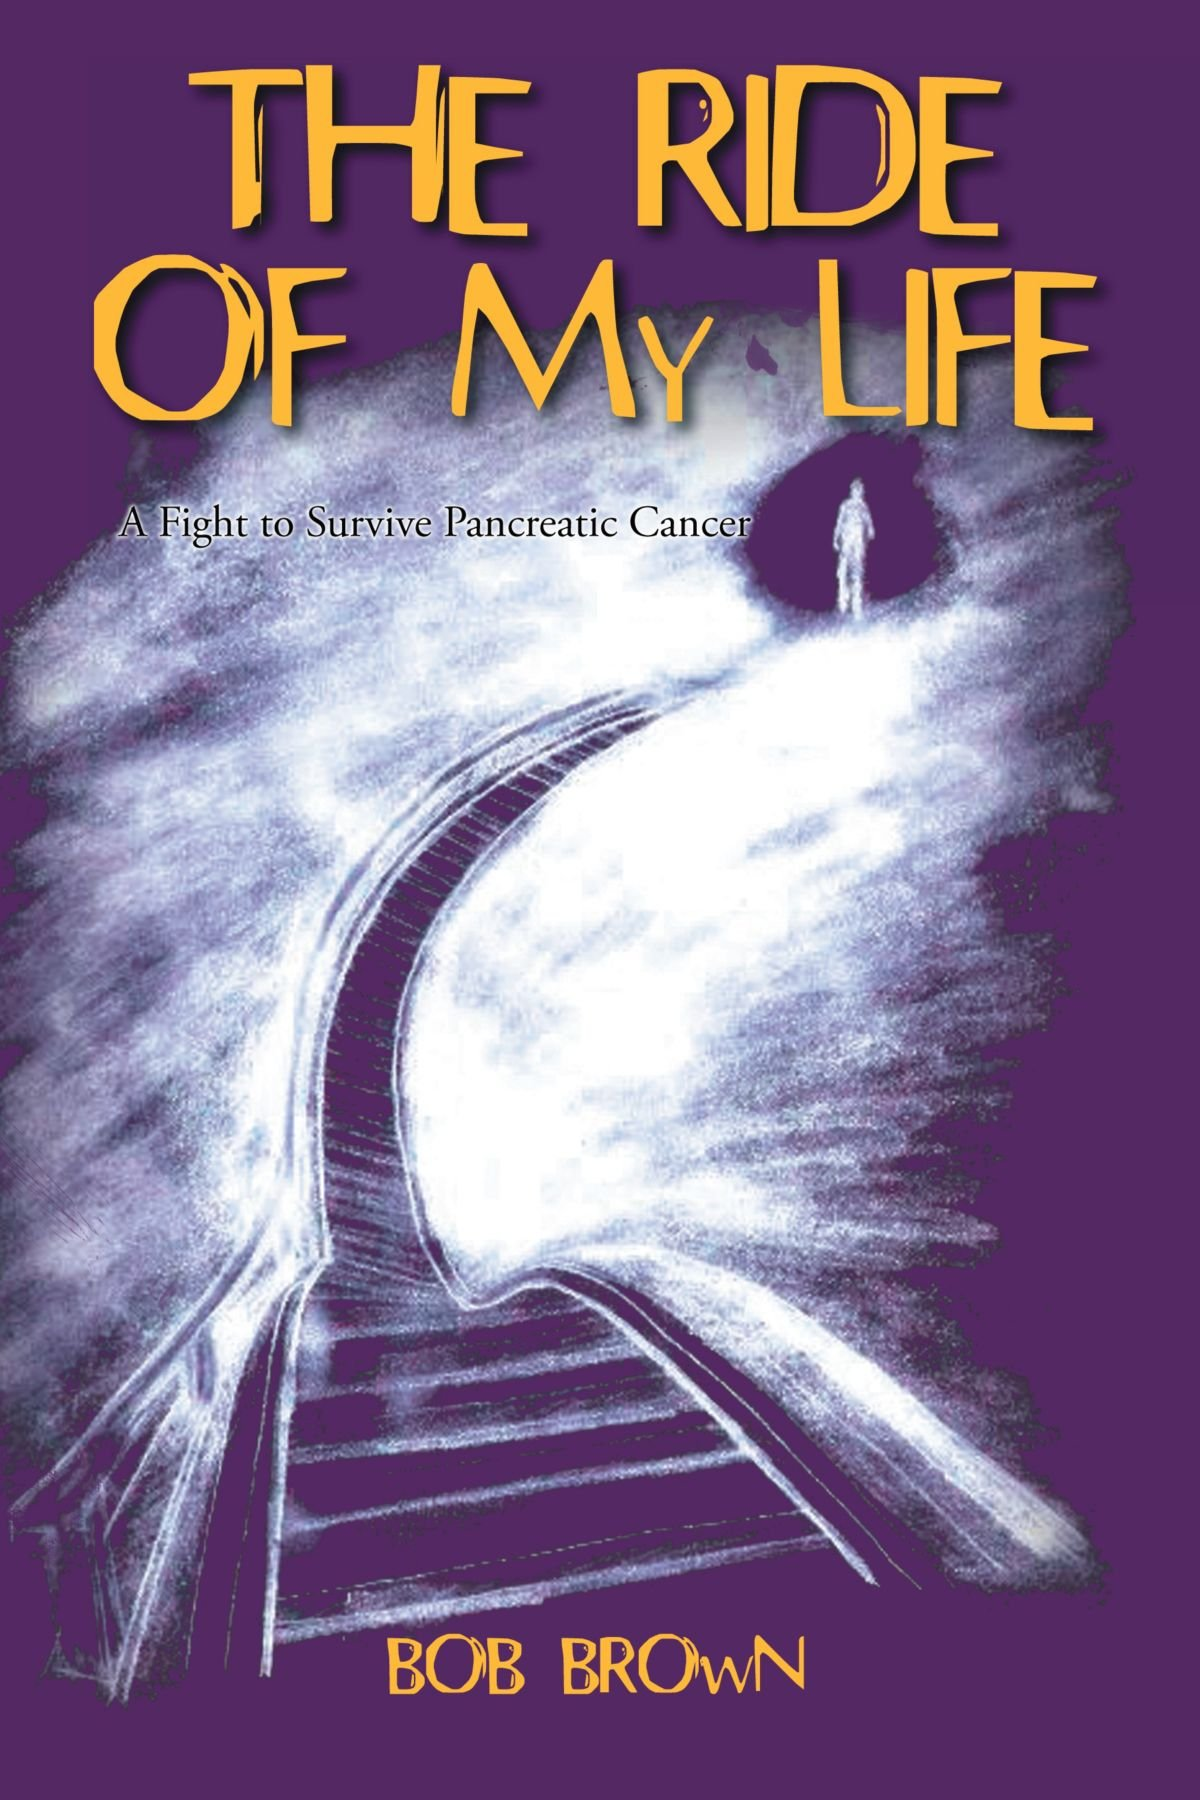 The Ride Of My Life: A Fight To Survive Pancreatic Cancer: Bob Brown:  9781462063277: Amazon.com: Books